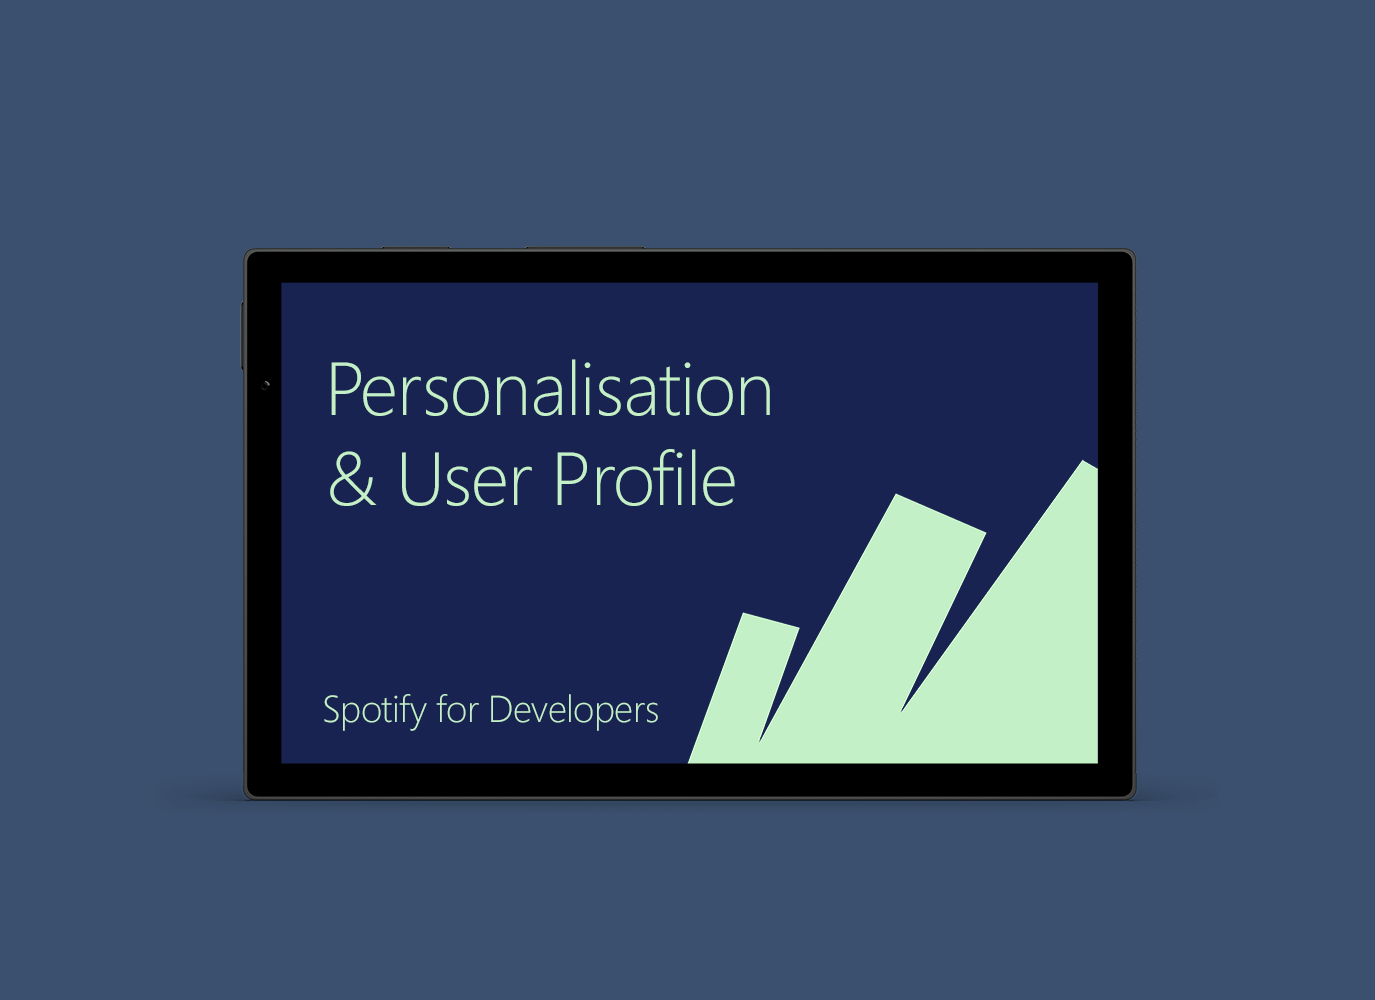 Personalisation & User Profile